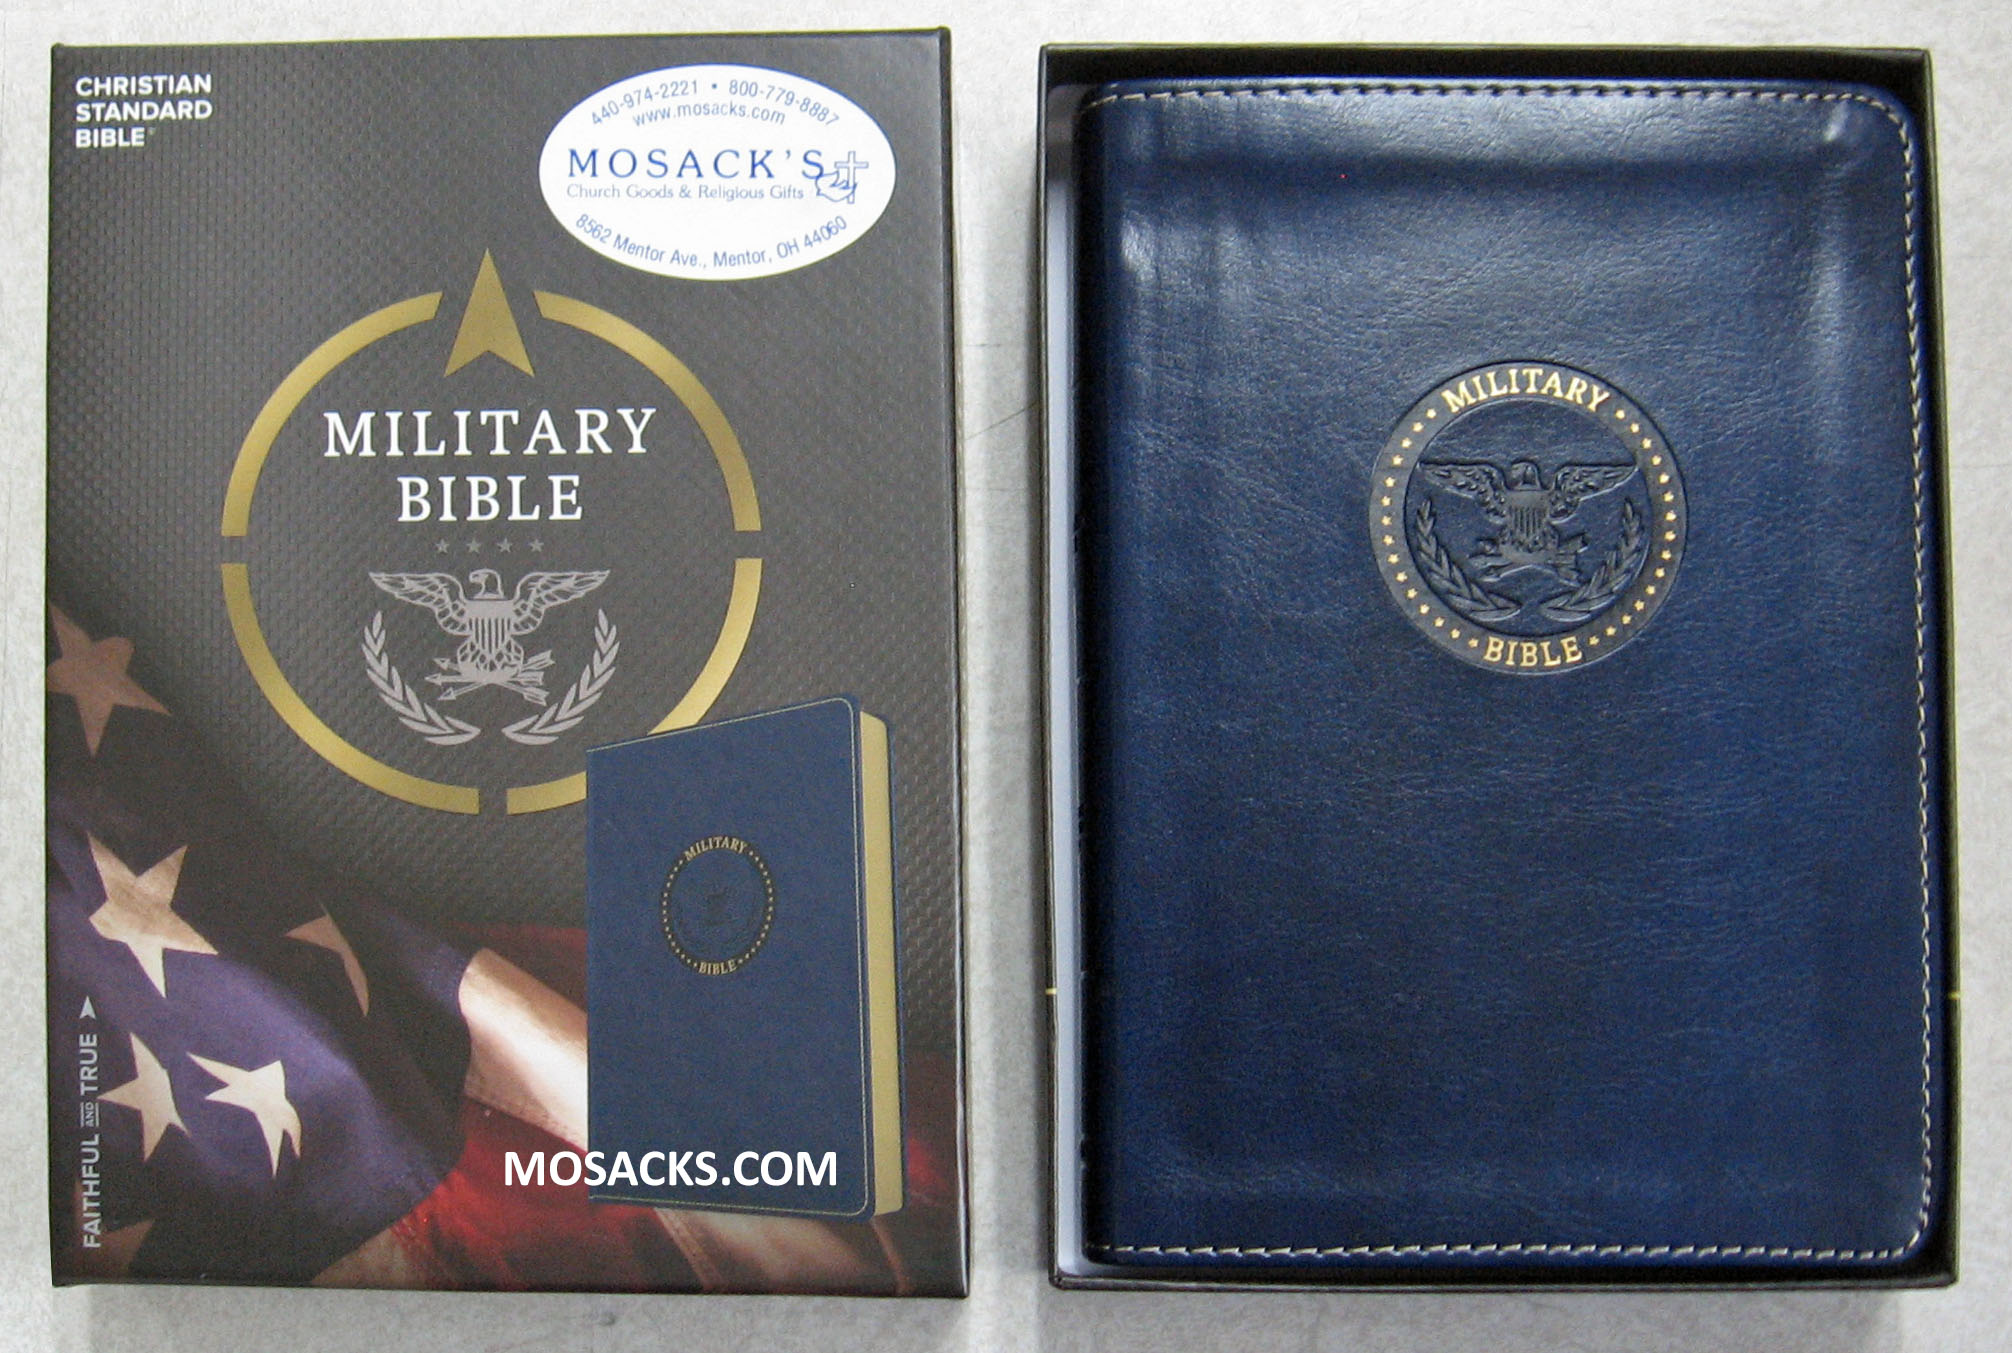 The Airman's Bible in Blue Simulated Leather 4-1/2 x 7 inch 9781466351786